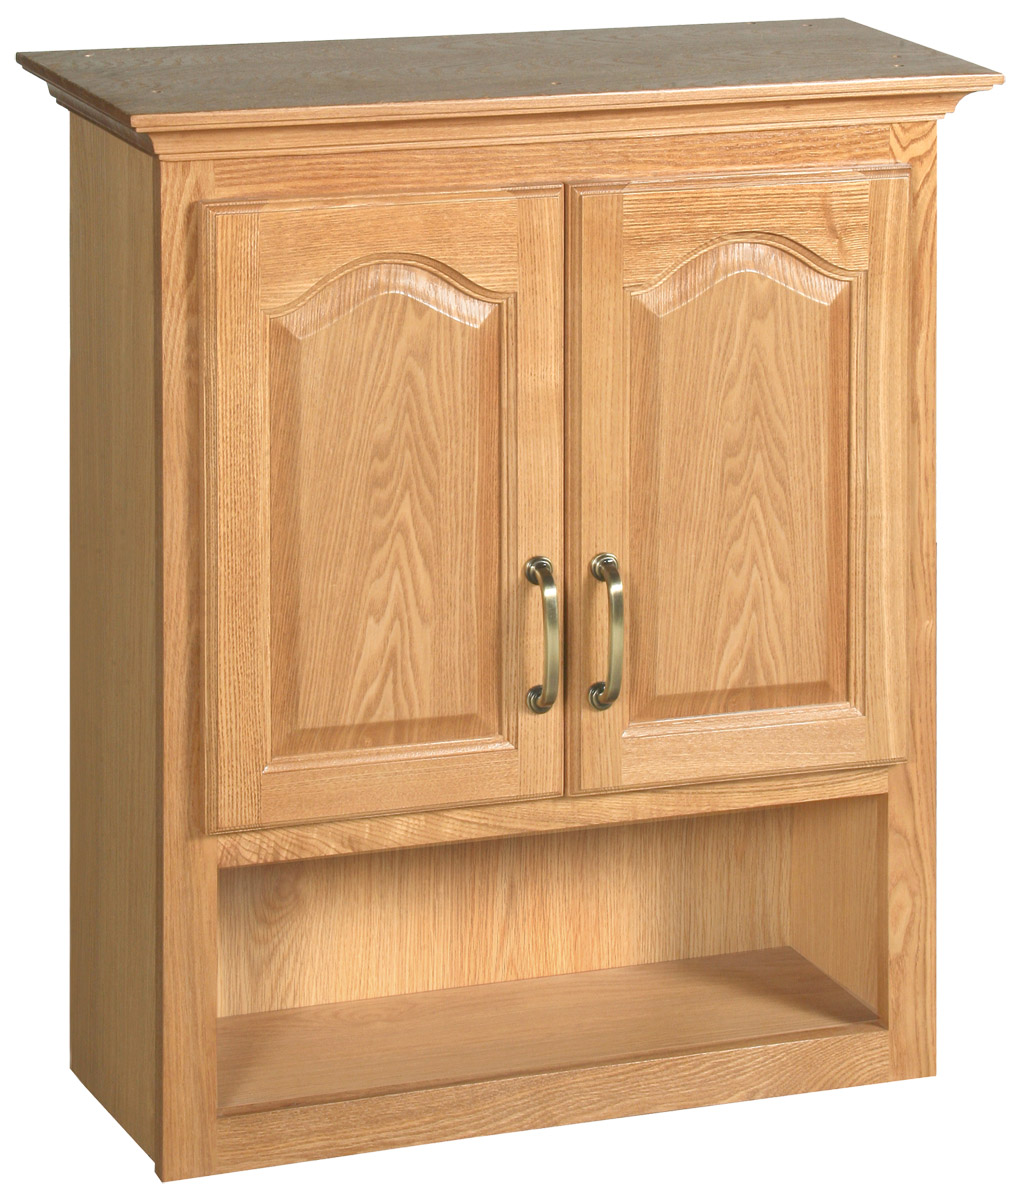 Design House 552844 Richland Nutmeg Oak Bathroom Wall Cabinet with 2-Doors 26.7-Inches by 30-Inches